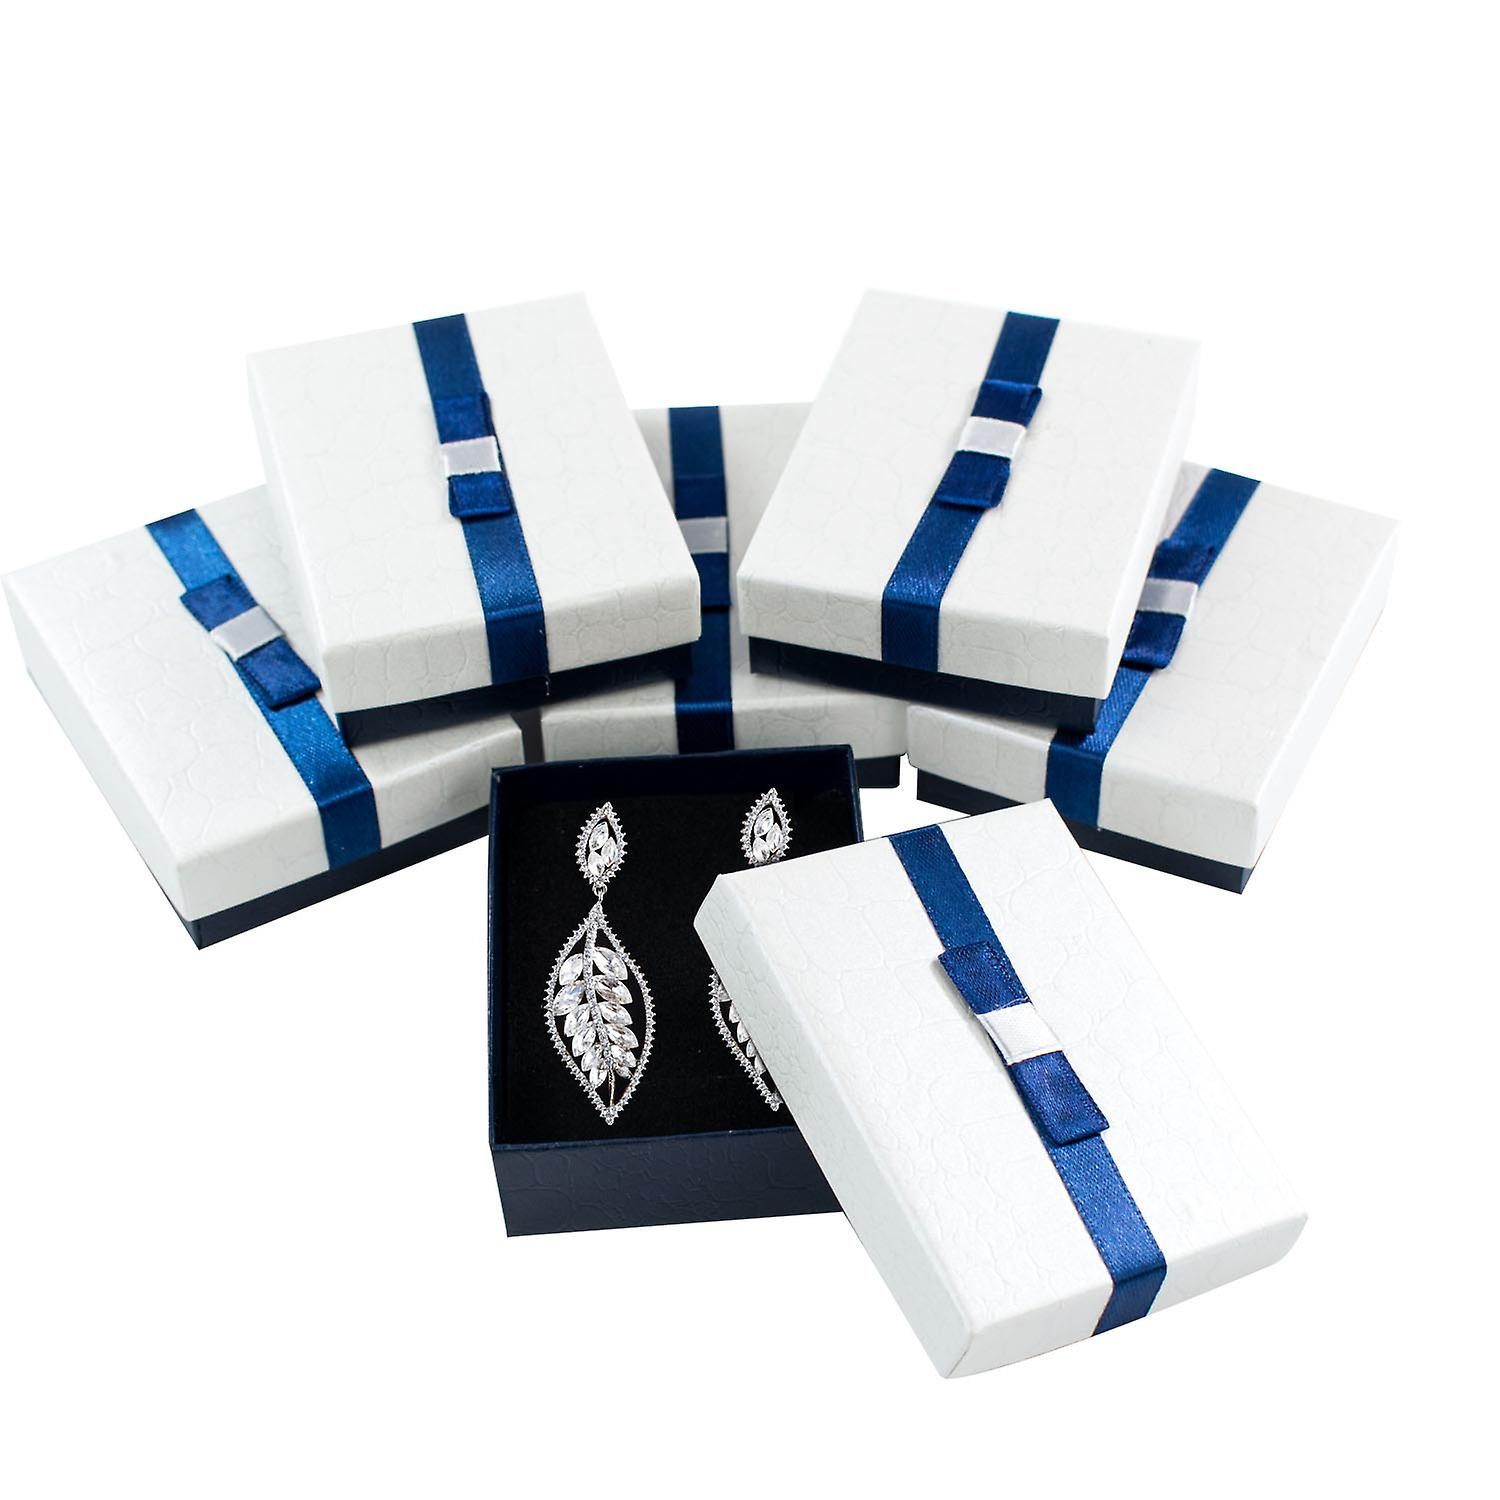 TRIXES 6PC Jewellery Box for Necklaces Rings Earrings Display  9 x 7 x 3cm